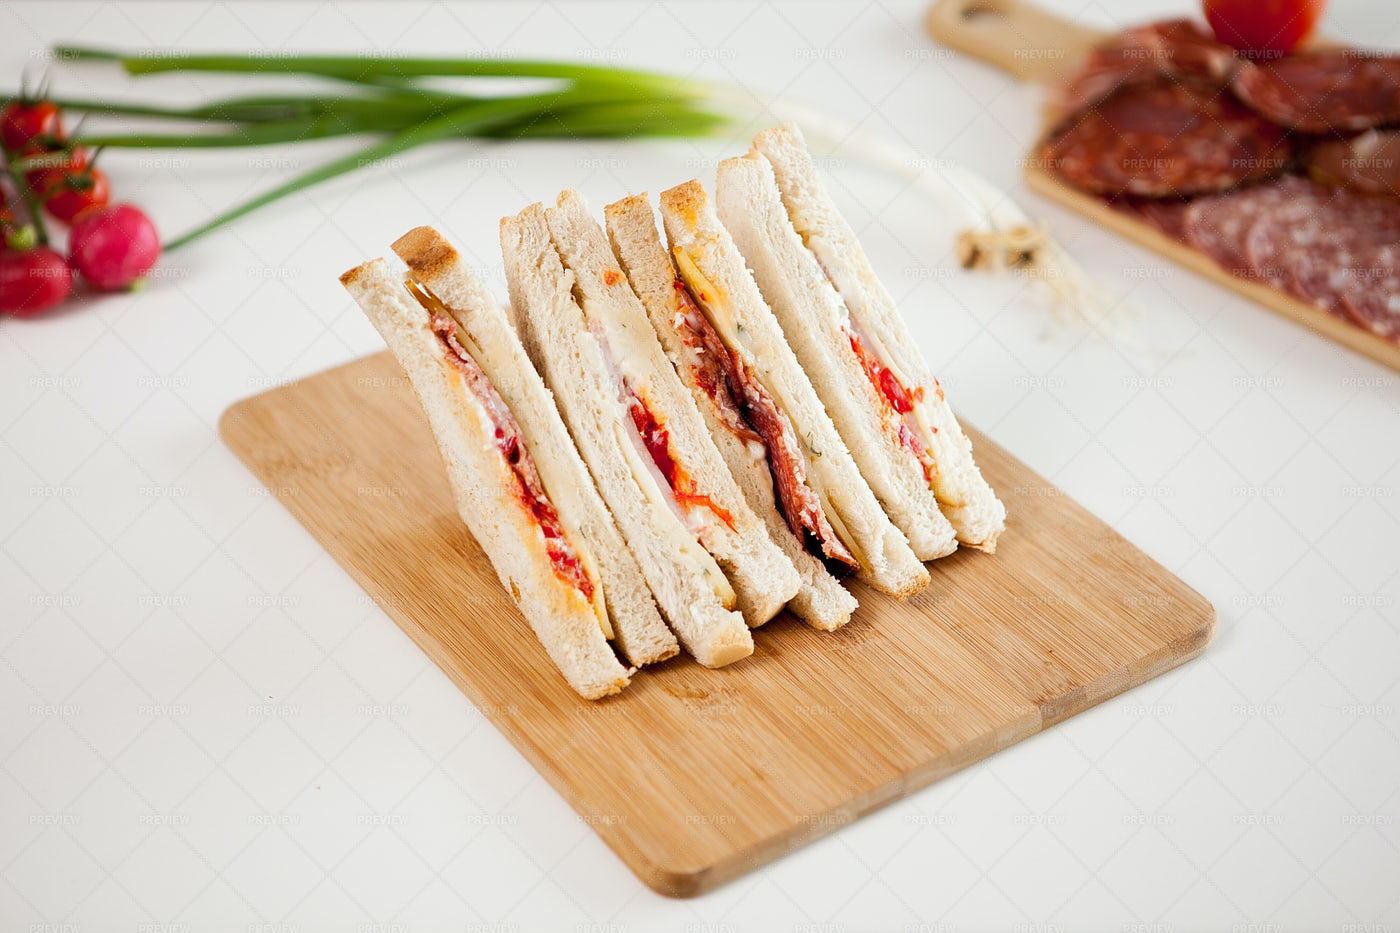 Top View Of Club Sandwiches: Stock Photos